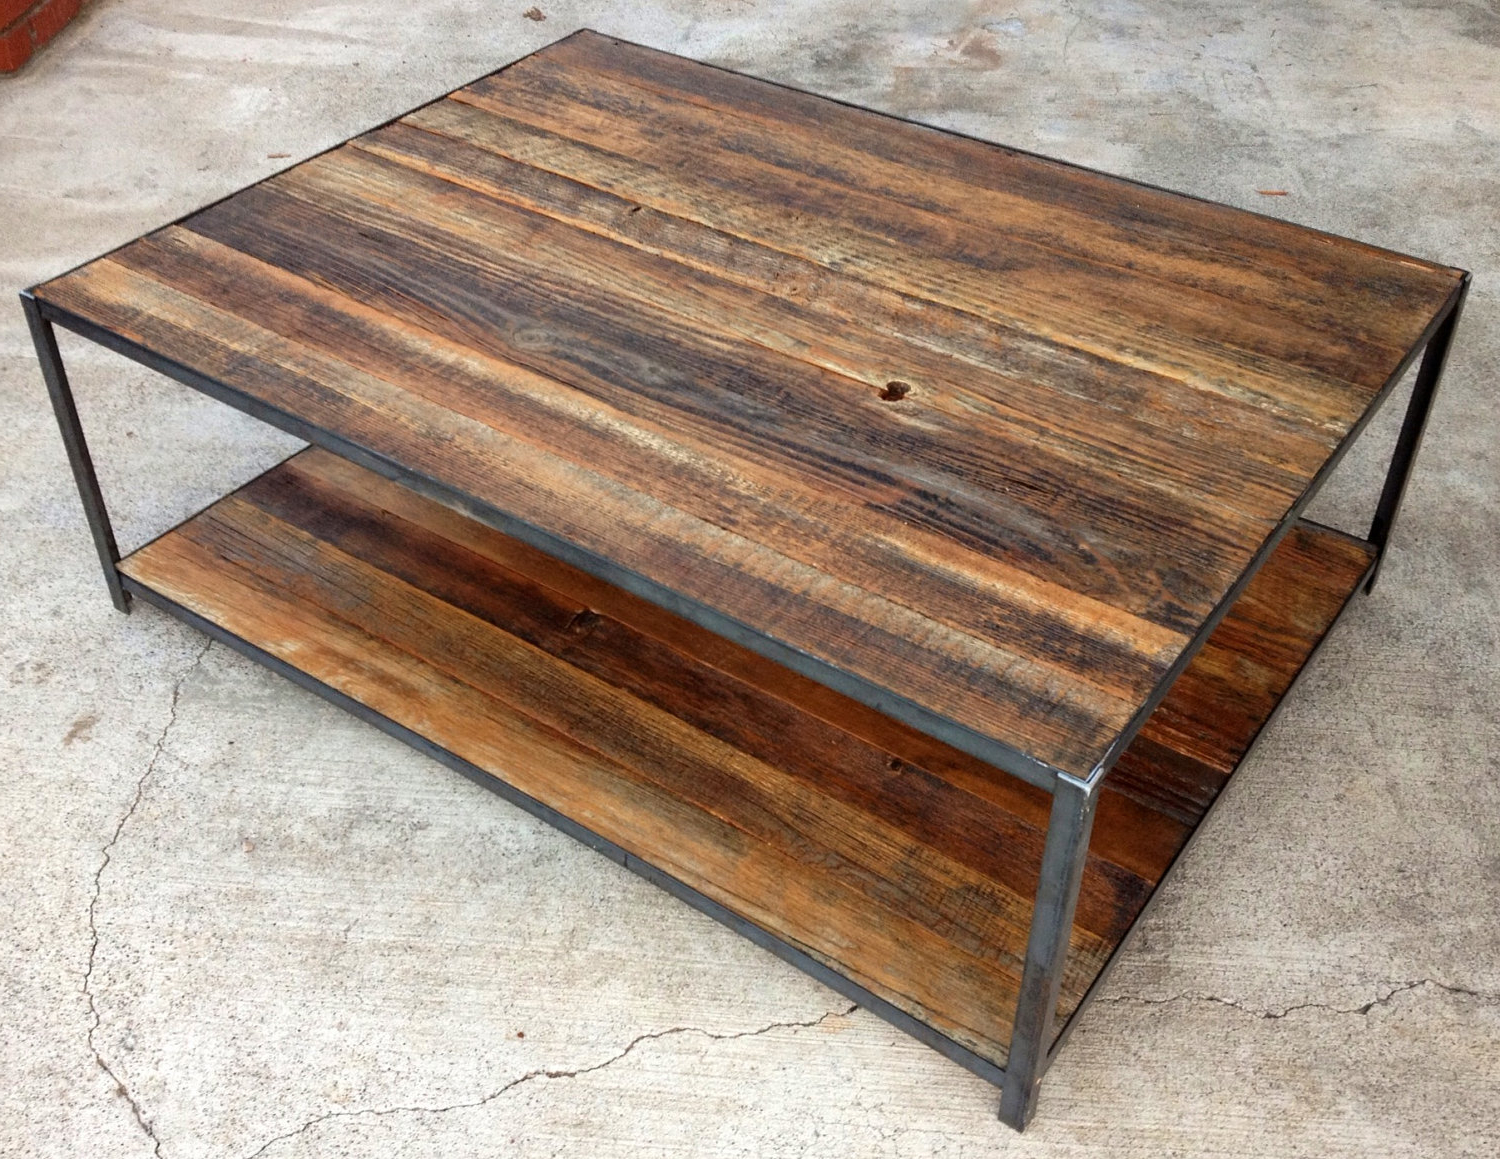 Favorite Iron Wood Coffee Tables With Wheels Intended For Best Reclaimed Wood Coffee Table Diy 53 On Home Design (View 7 of 20)